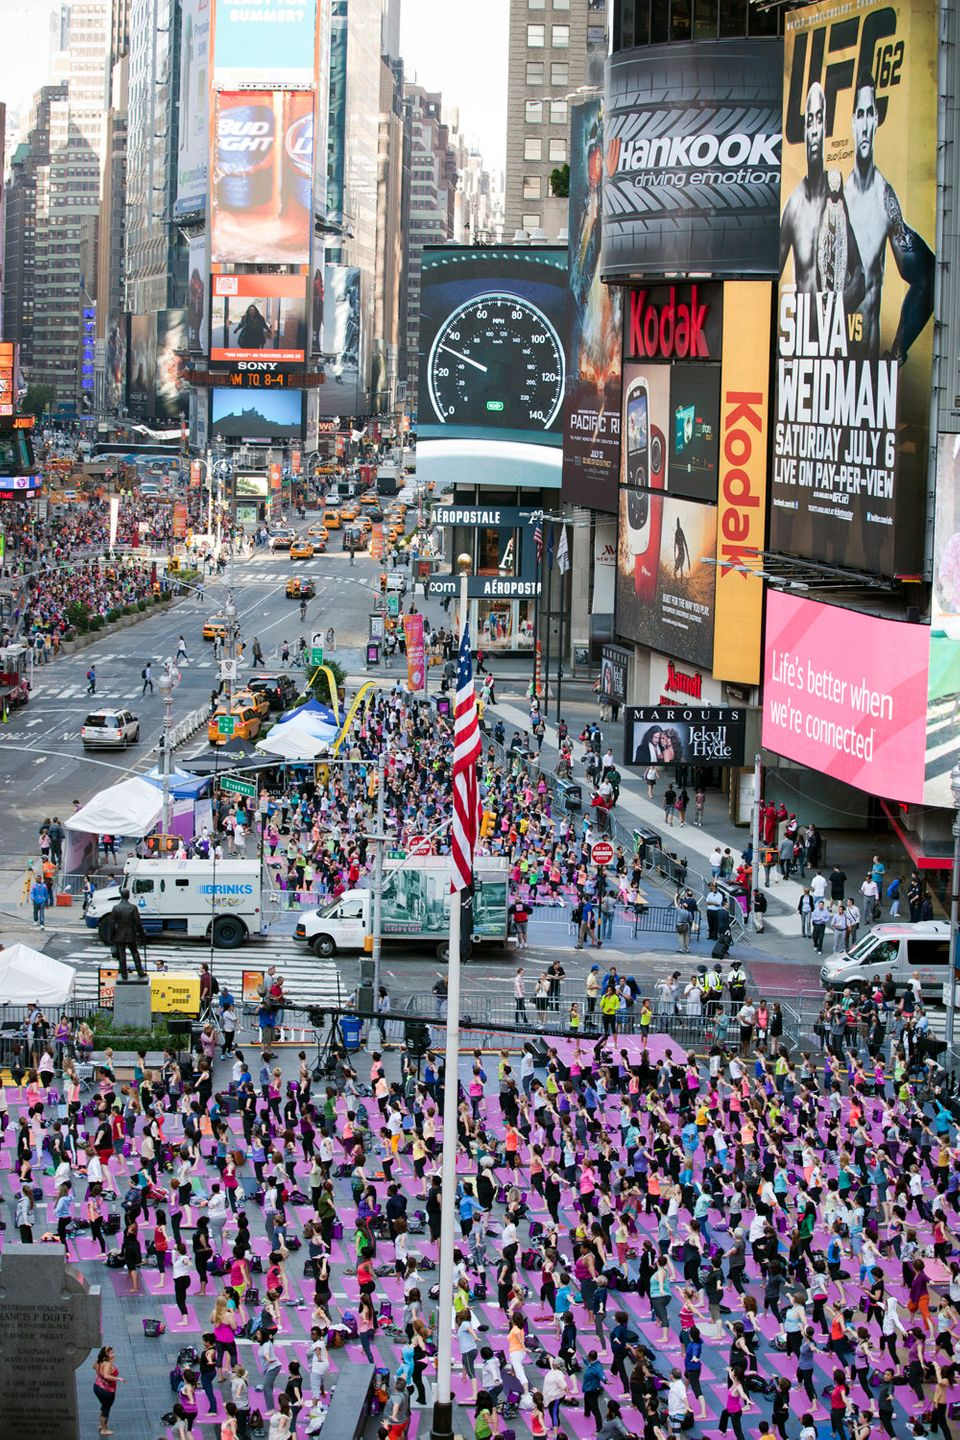 More than 15,000 people are expected to practice yoga during the 11th Solstice in Times Square event on June 21st